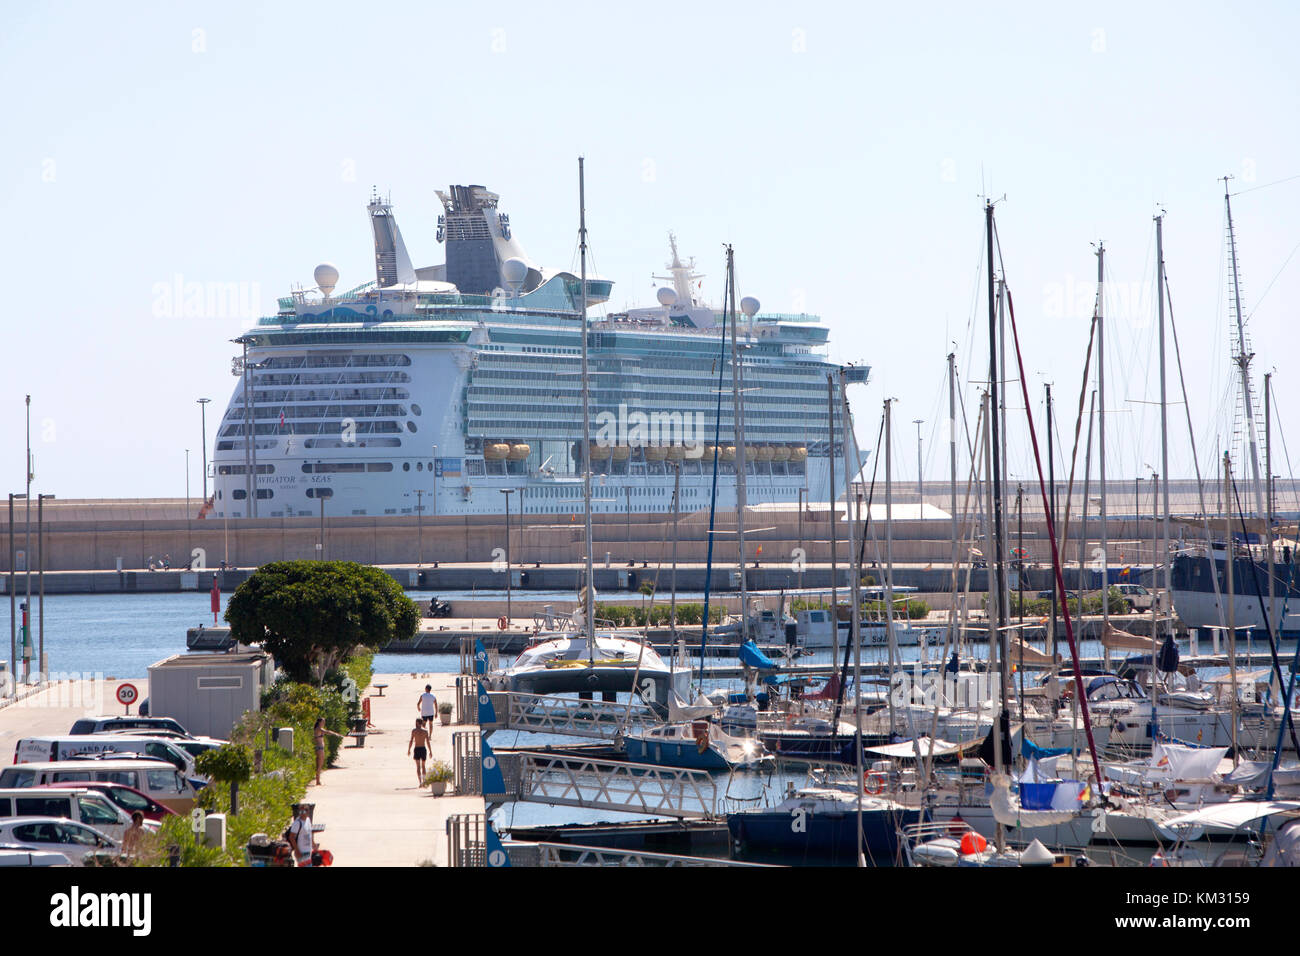 The Royal Caribbean Navigator of the Seas cruise ship berthed at Valencia Spain in Summer - Stock Image